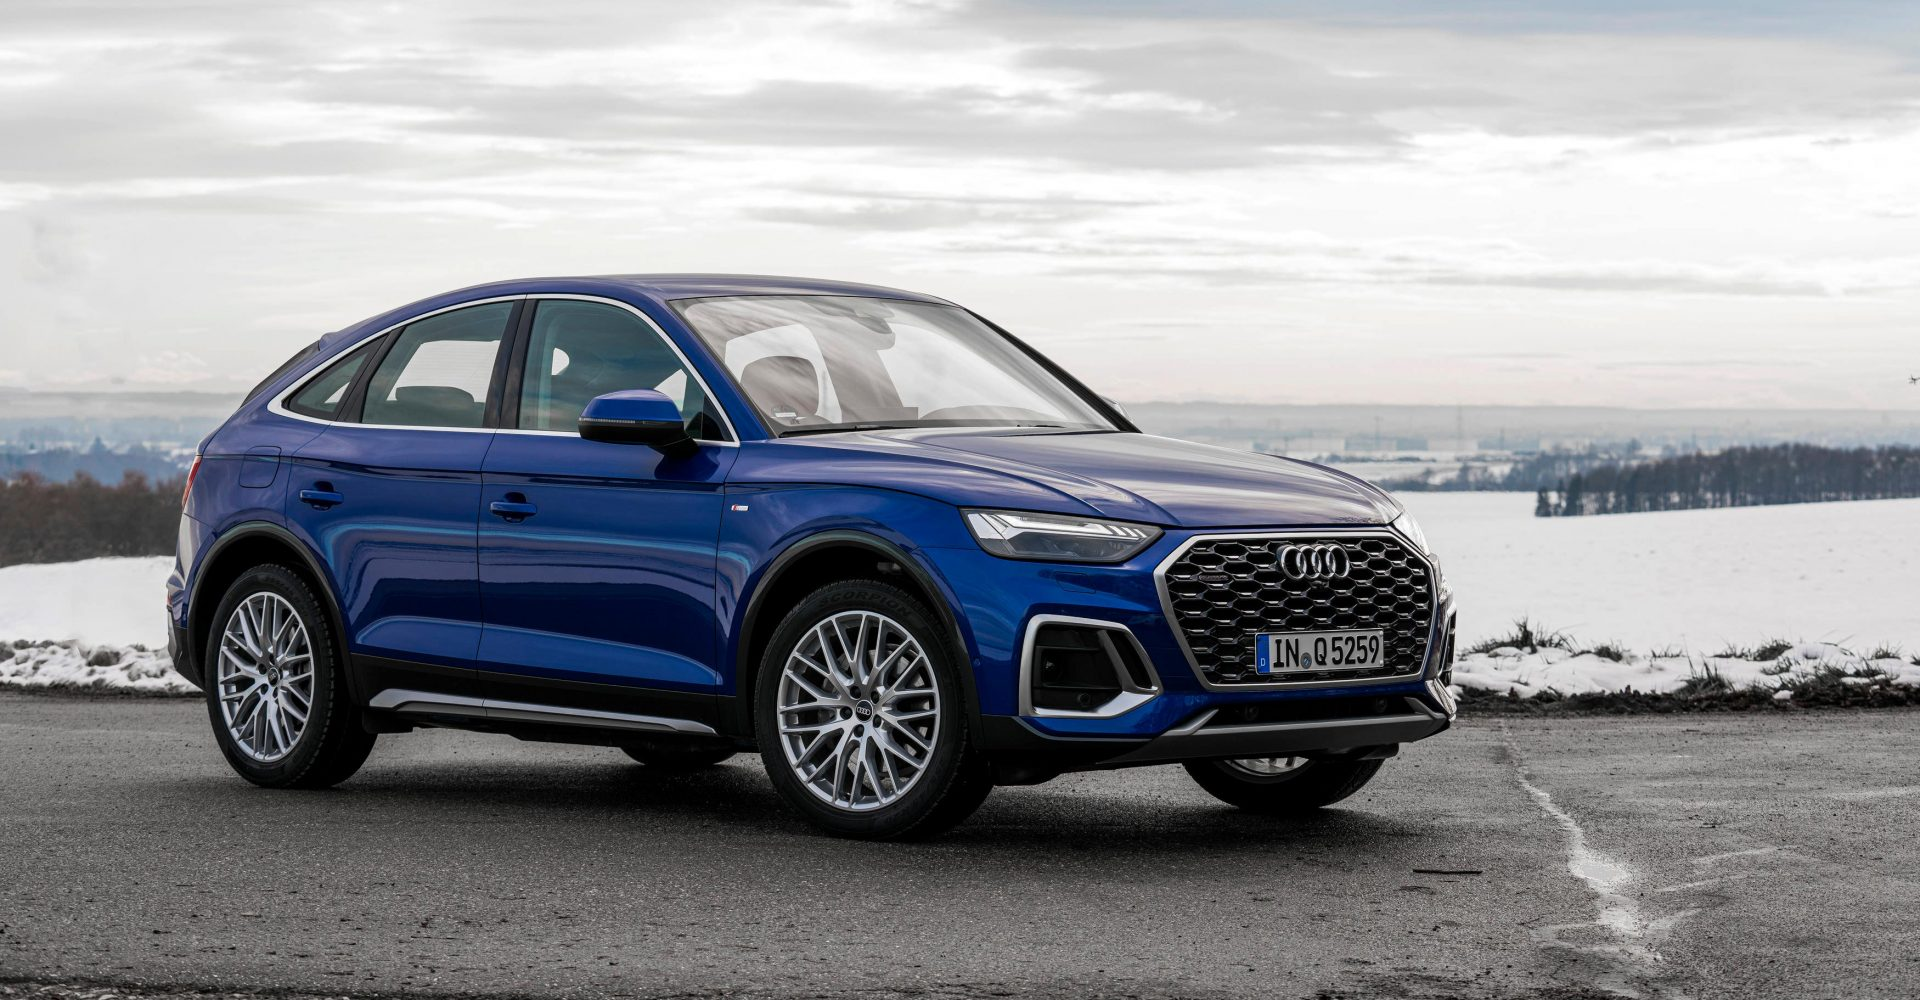 First Drive: The Audi Q5 Sportback brings extra style to the SUV line-up